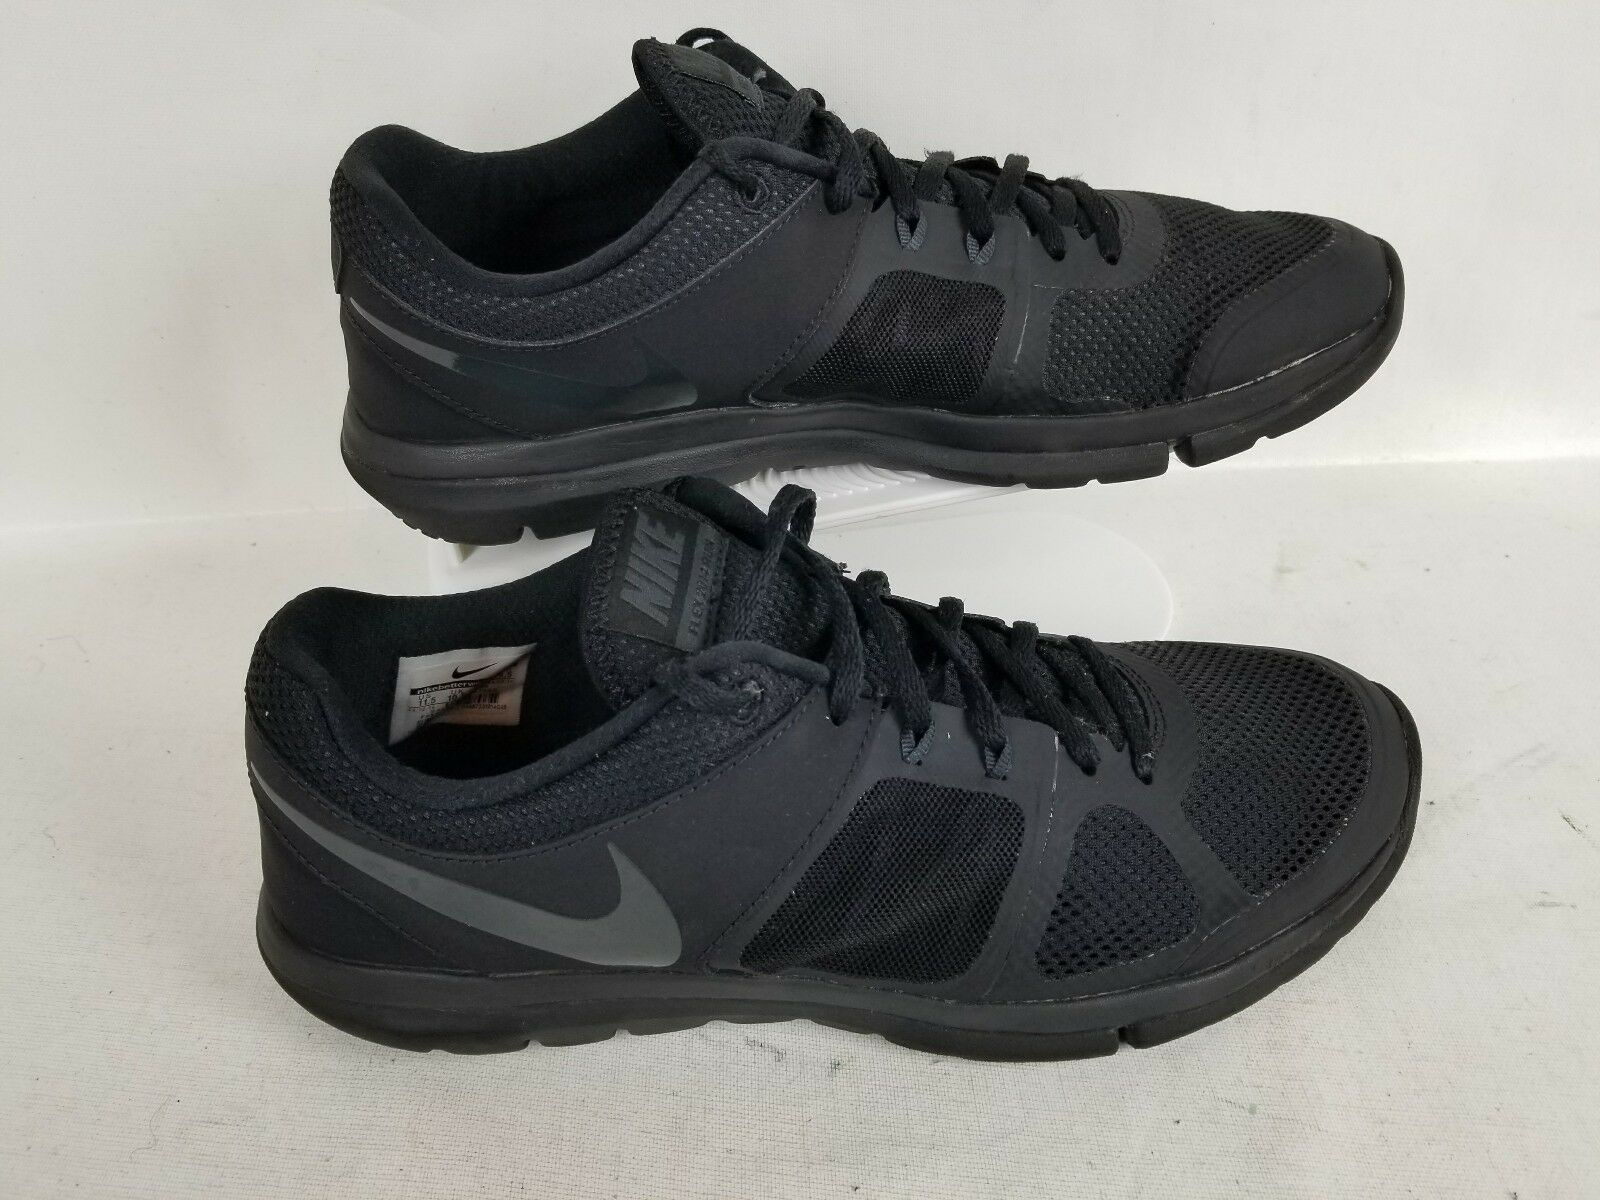 NIKE FLEX 2014 RUN  ATHLETIC RUNNING SNEAKERS BLACK SHOES MEN'S​ SIZE 11.5